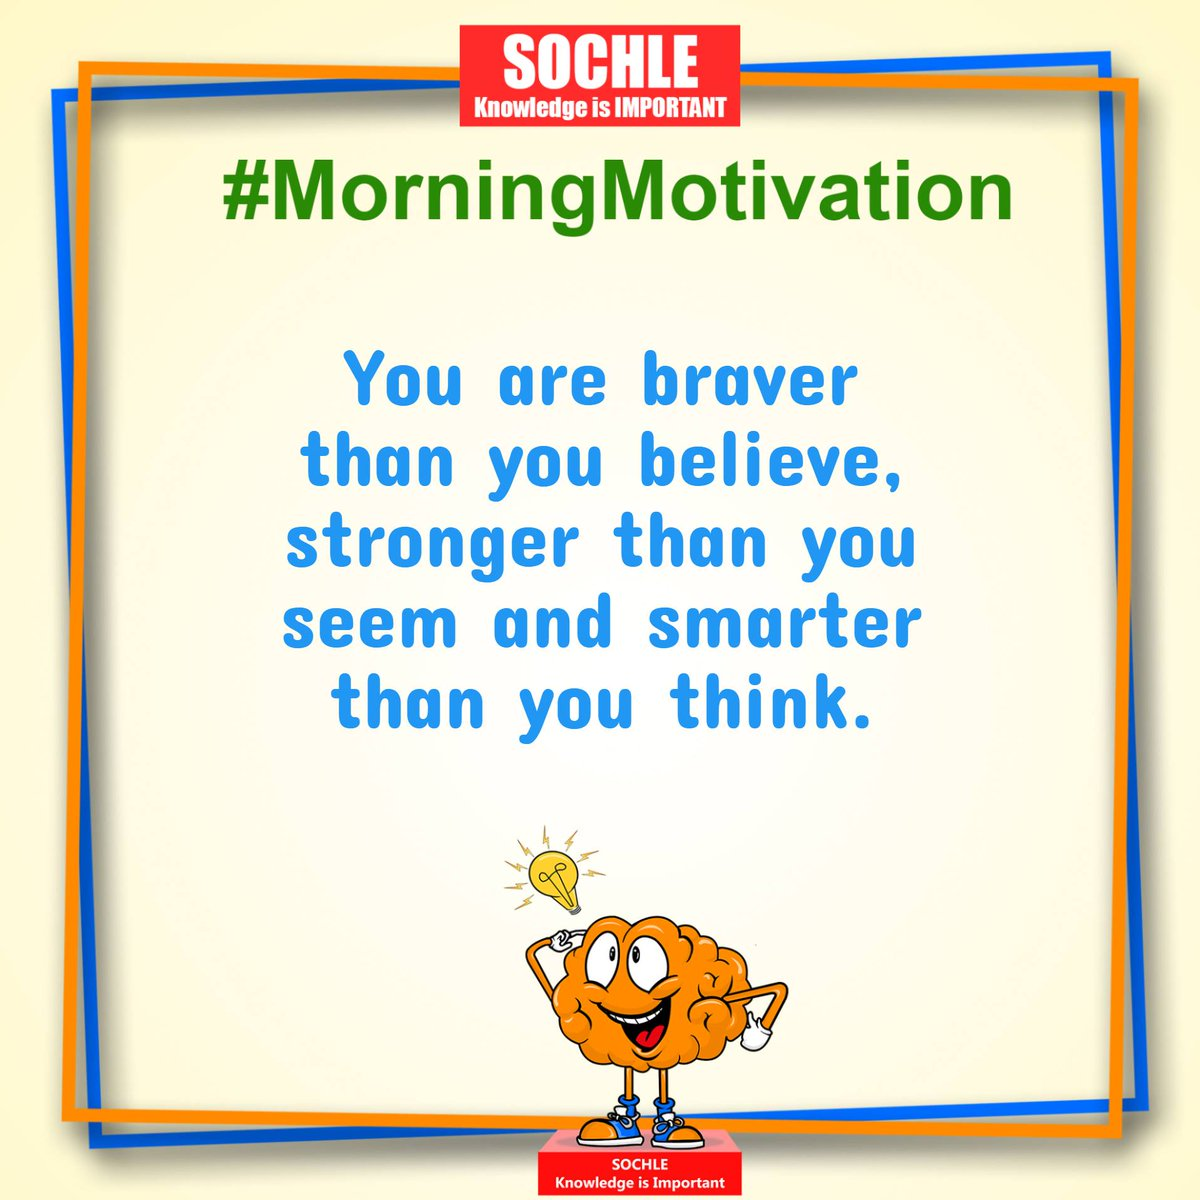 You are braver than you believe, stronger than you seem, and smarter than you think.  Get Positive vibes and Information with our Whatsapp Community!  https://t.co/06WhMsyd8Q  #tuesdaymotivations #tuesdayvibe #Tuesday #quotes #inspirational #MotivationalQuotes #TheSochle https://t.co/Z4JWx8Gdpt